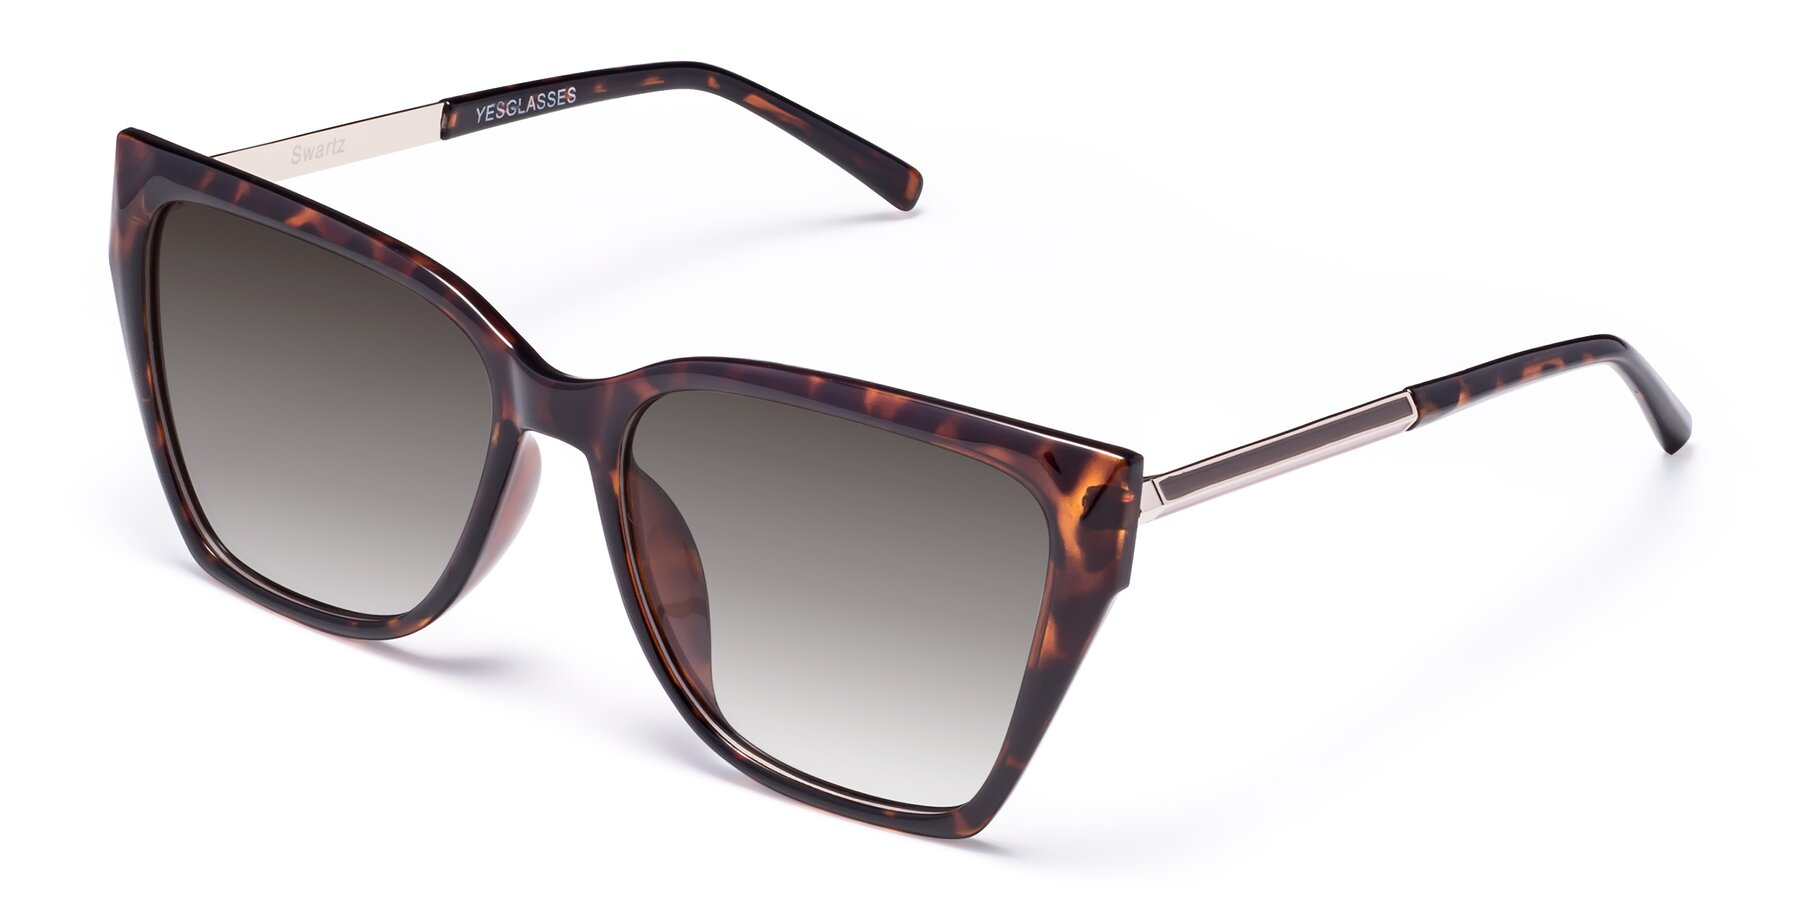 Angle of Swartz in Tortoise with Gray Gradient Lenses